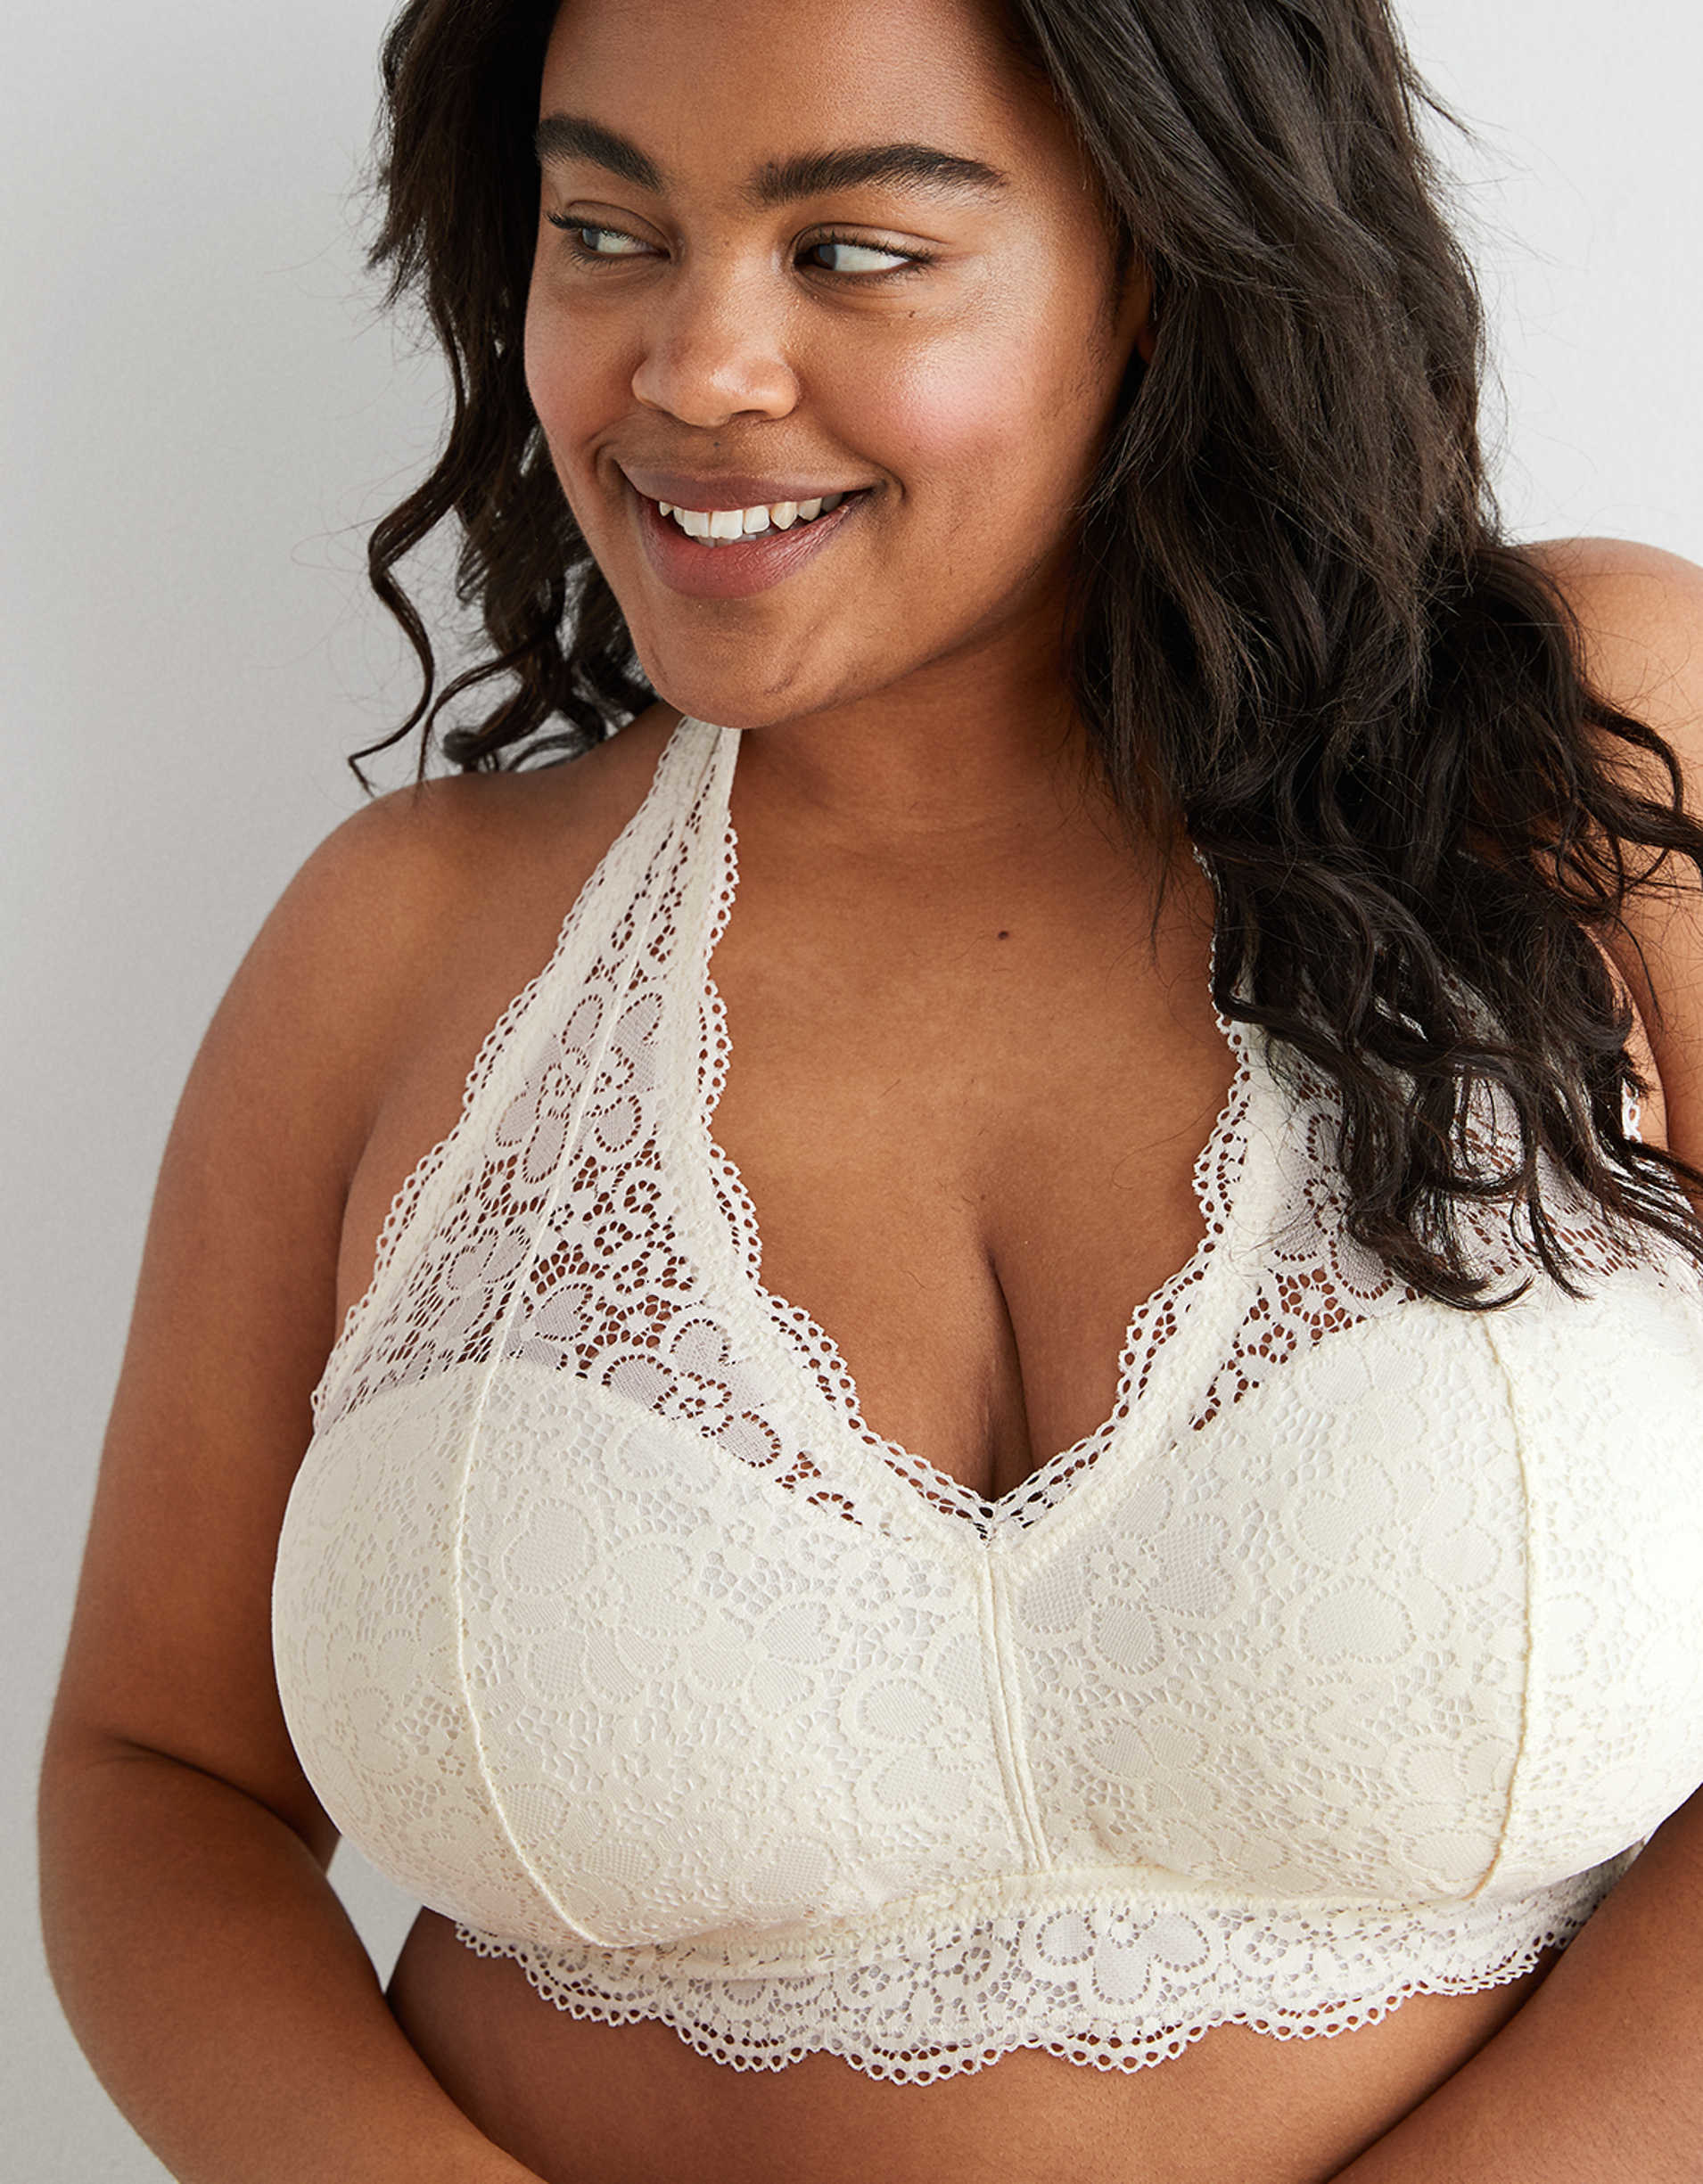 model in off white lace later bralette with full coverage on cups